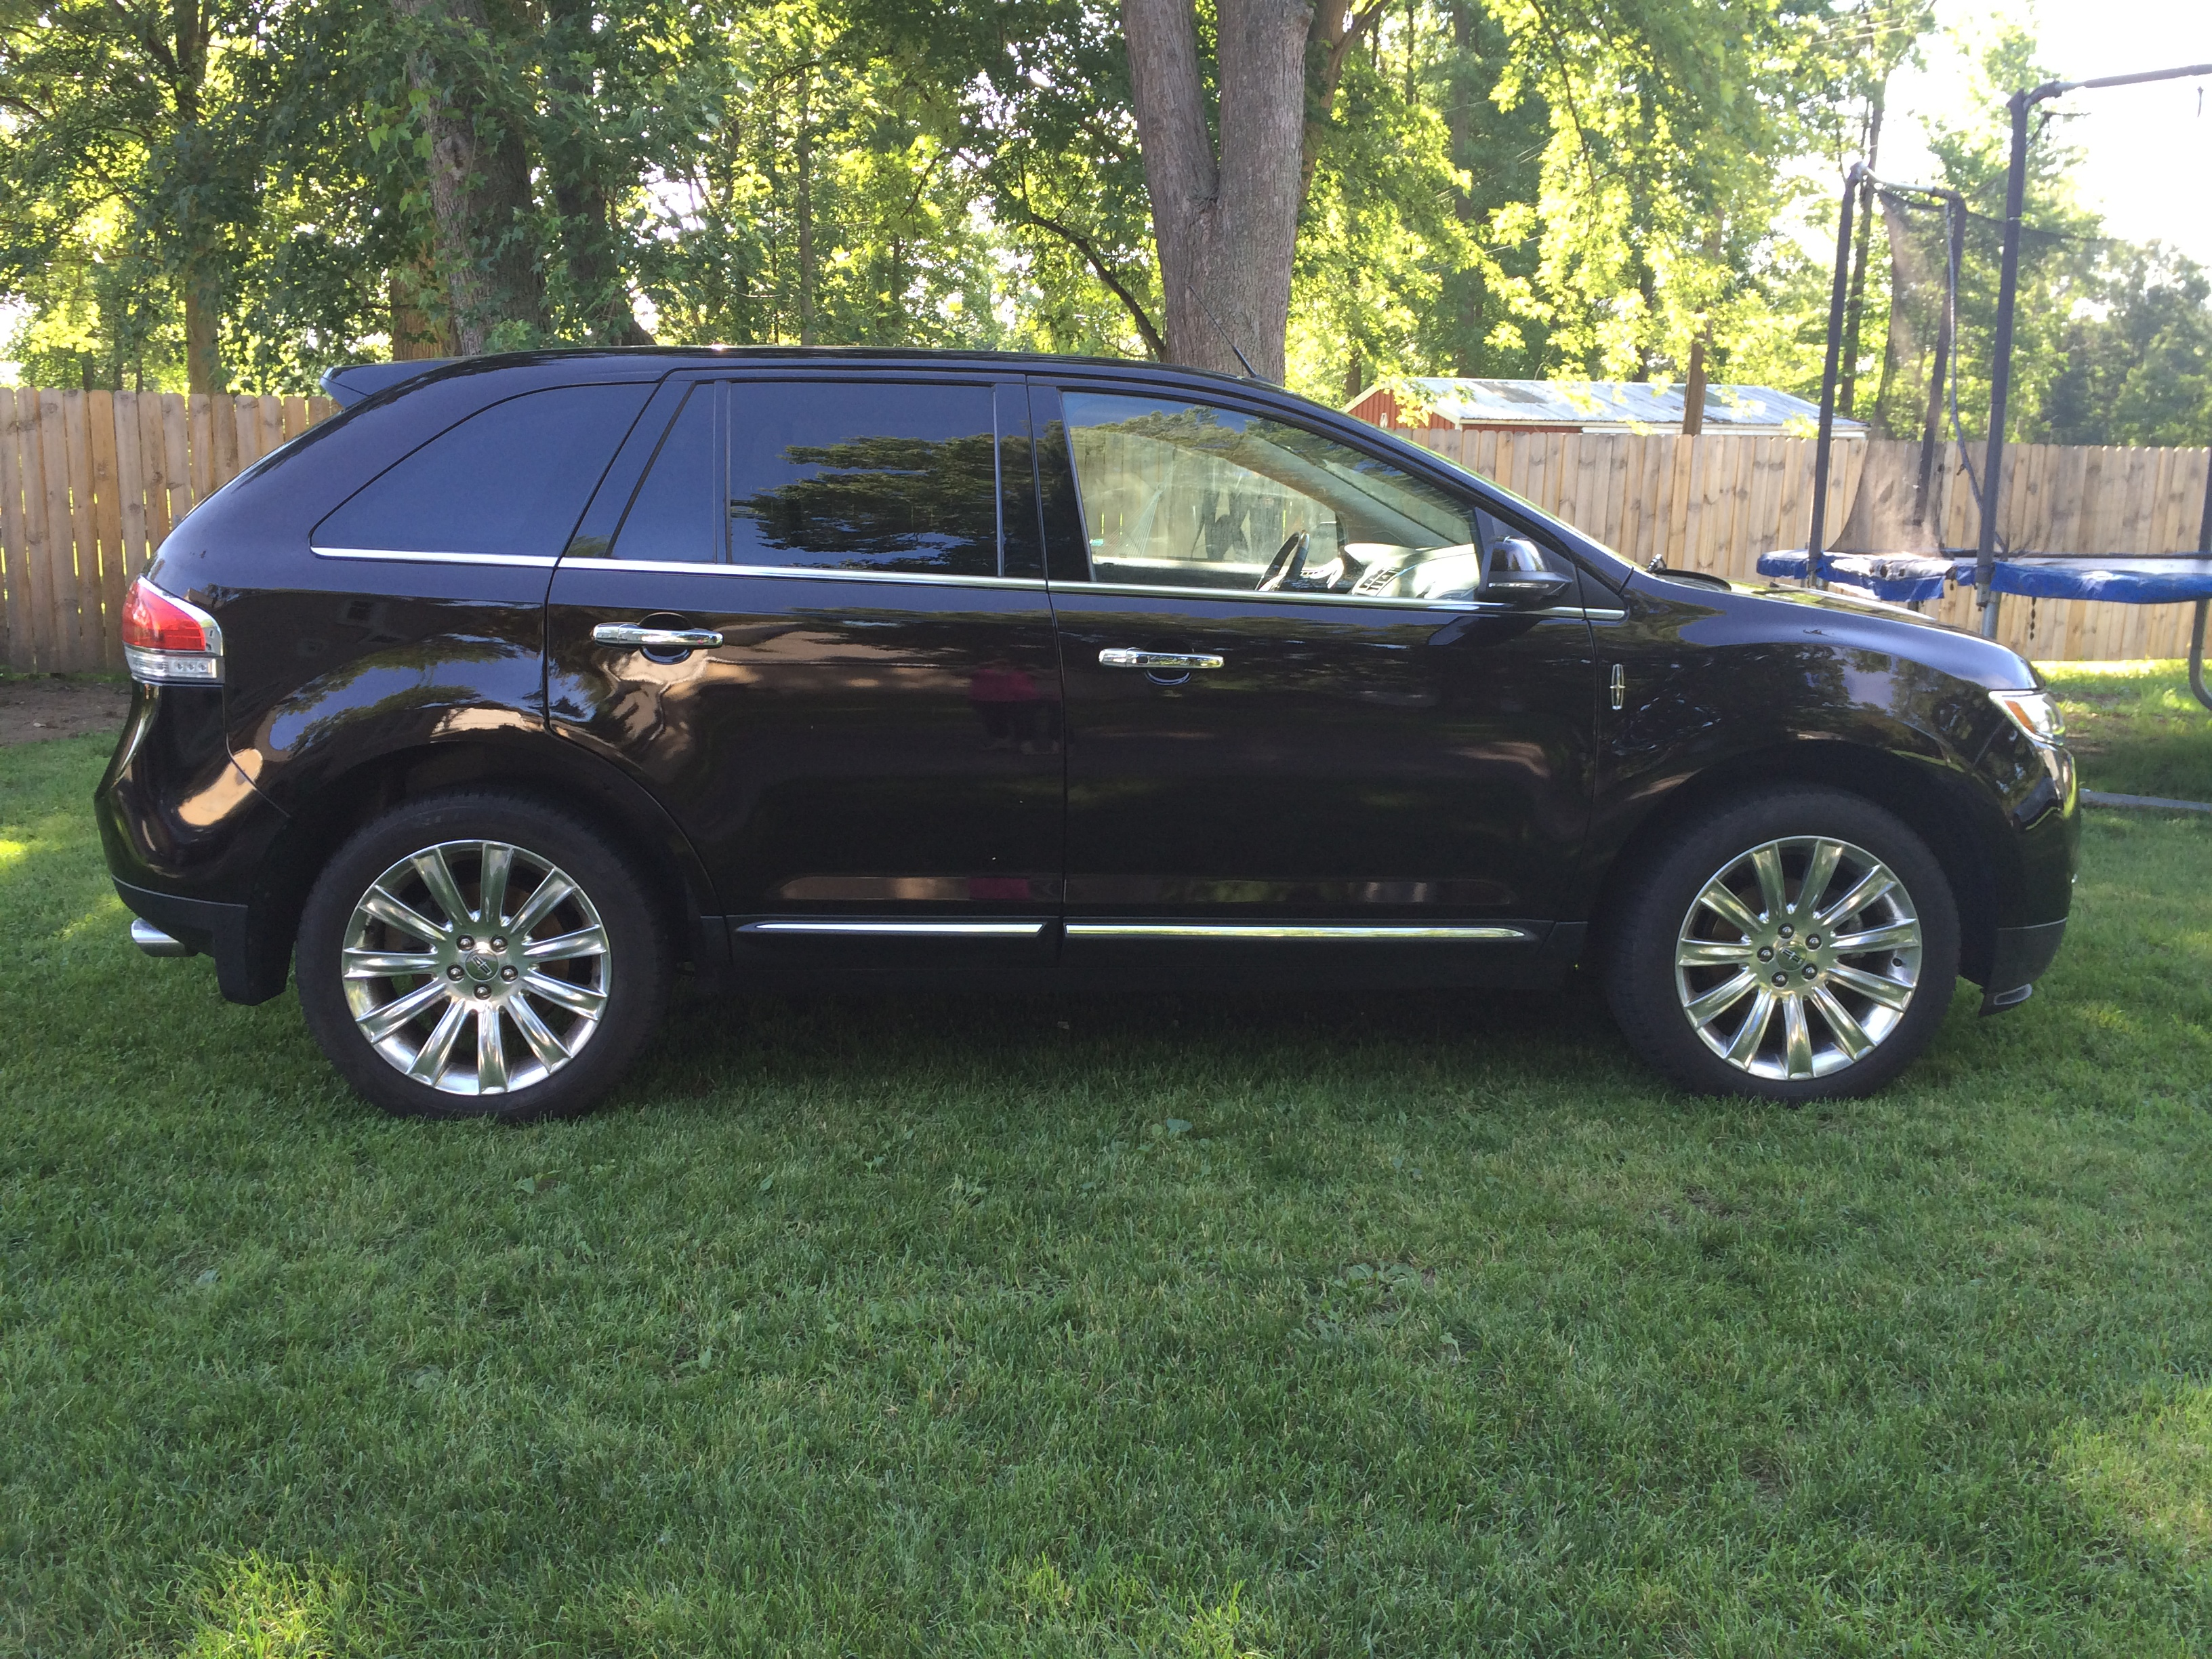 2013 lincoln mkx awd buds auto used cars for sale in michigan buds auto used cars for. Black Bedroom Furniture Sets. Home Design Ideas